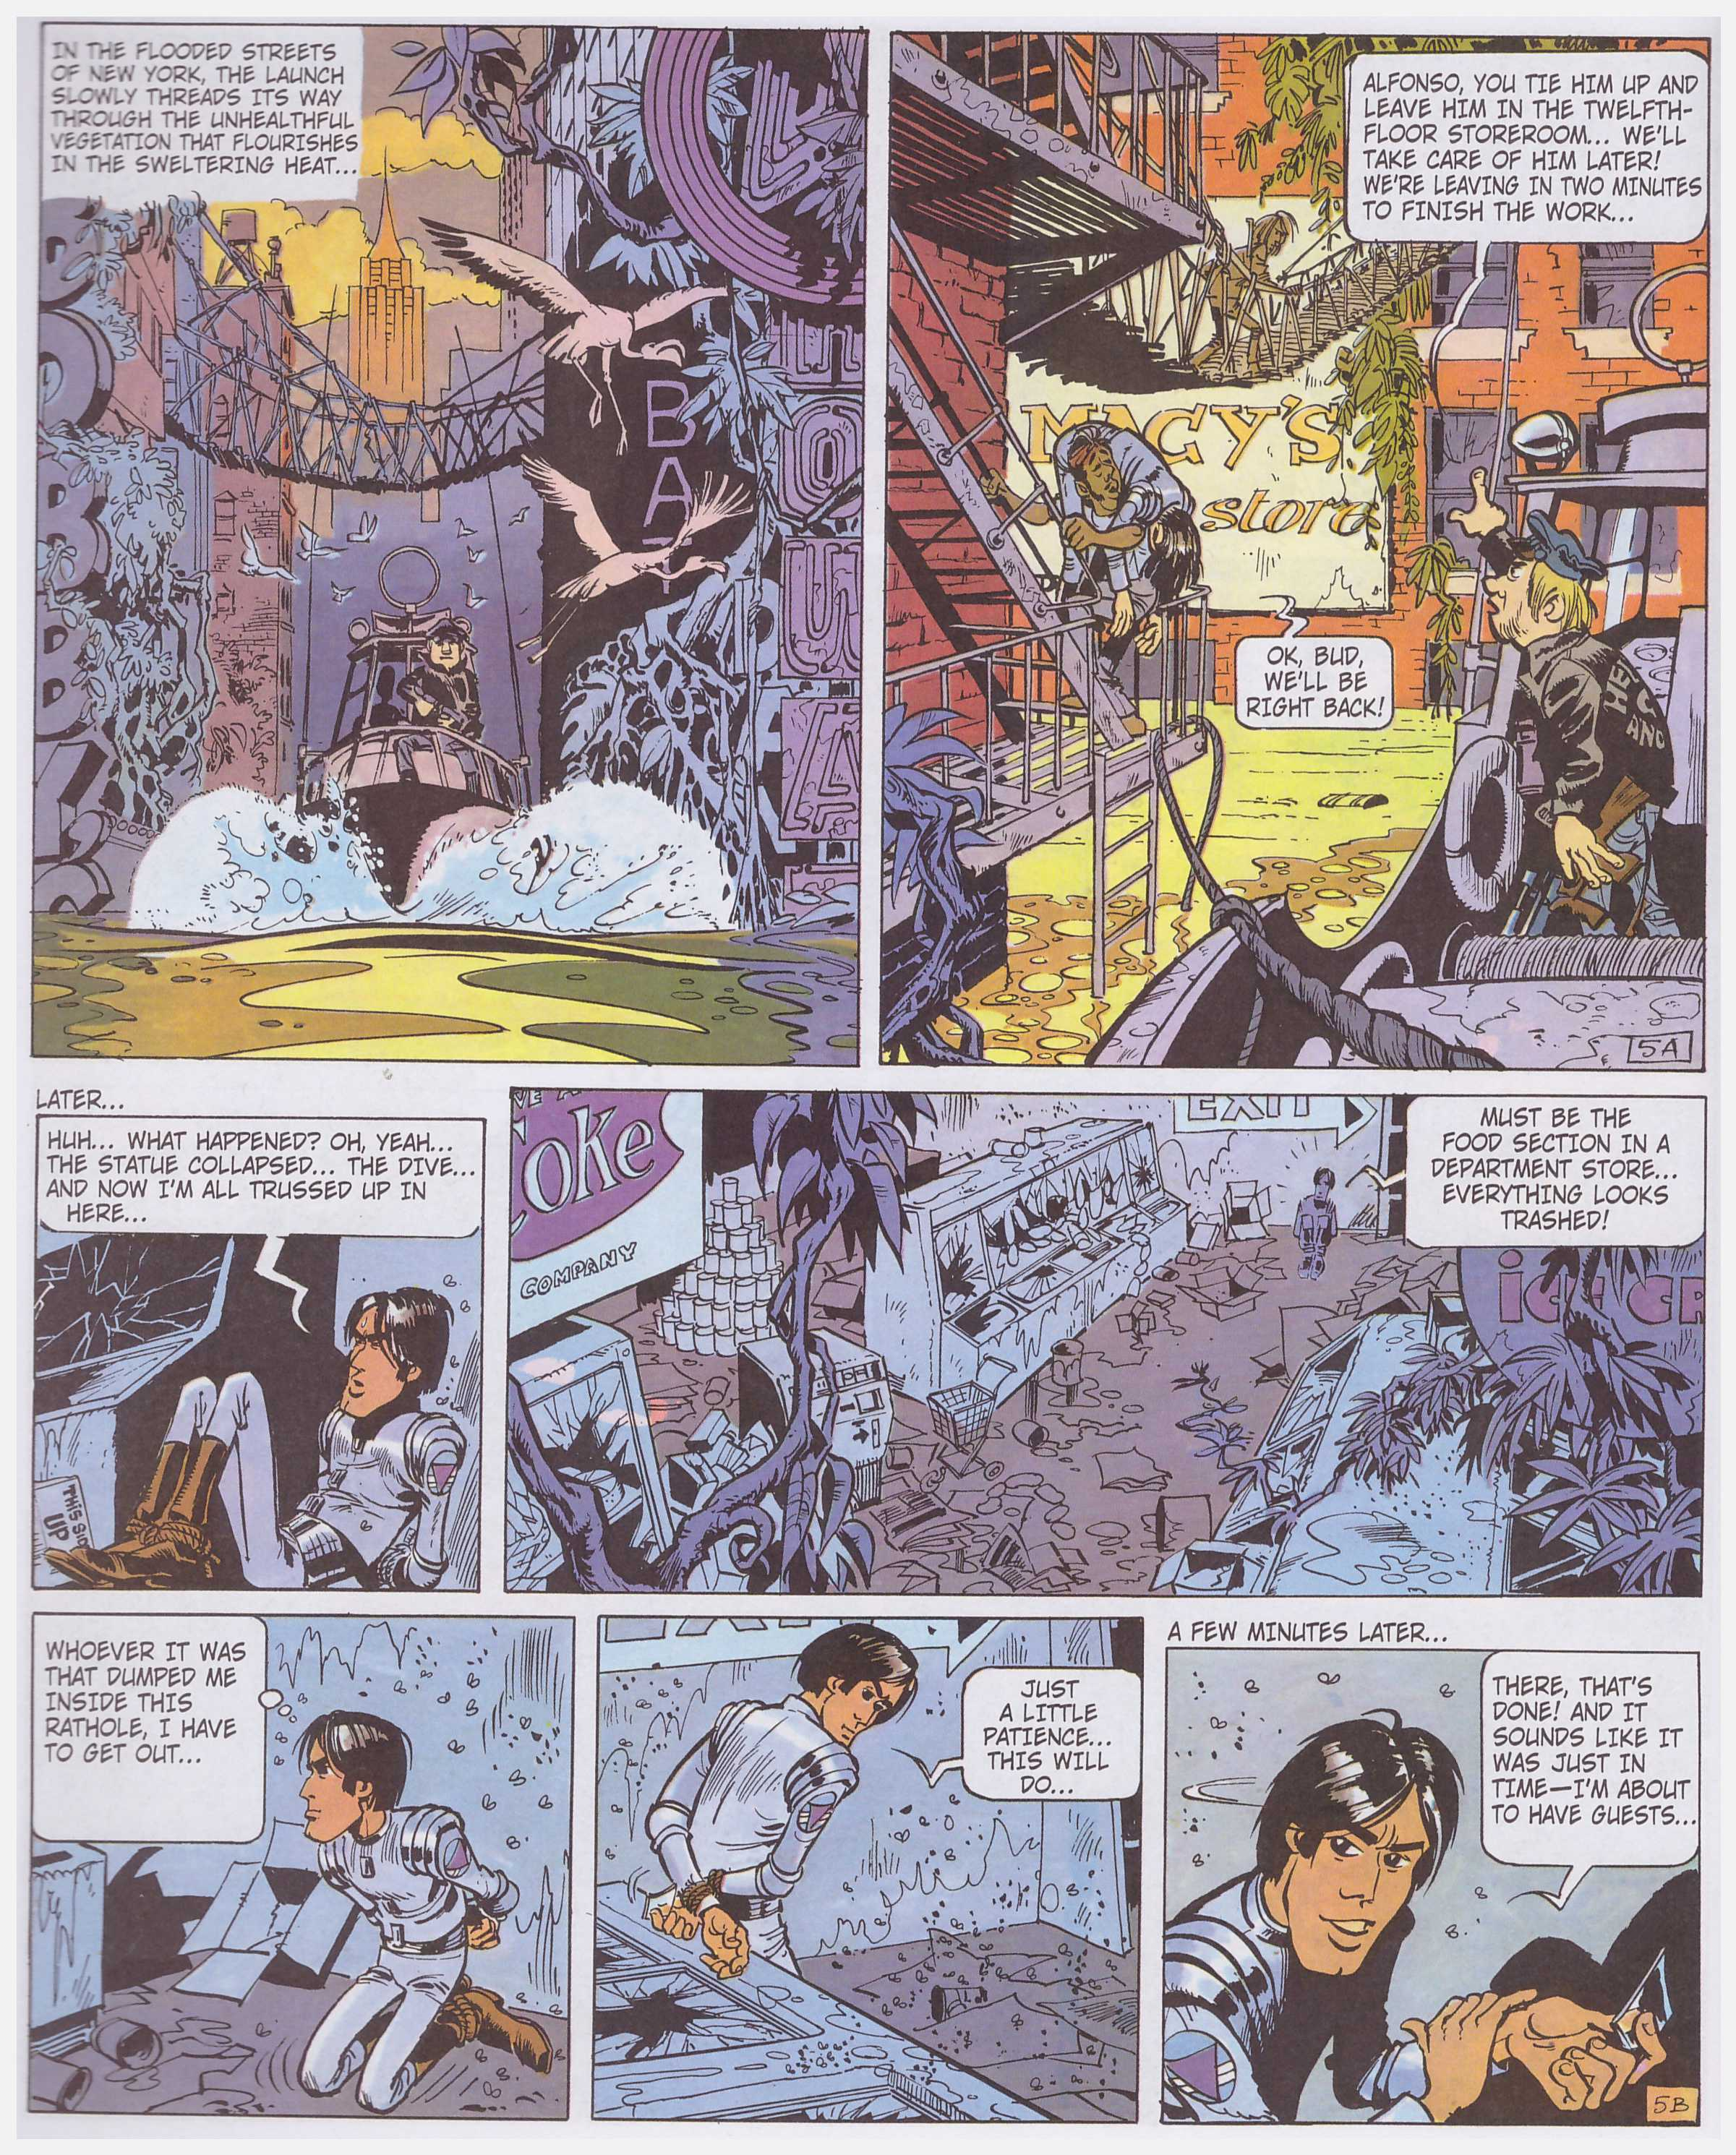 Valerian and Laureline The City of Shifting Waters review